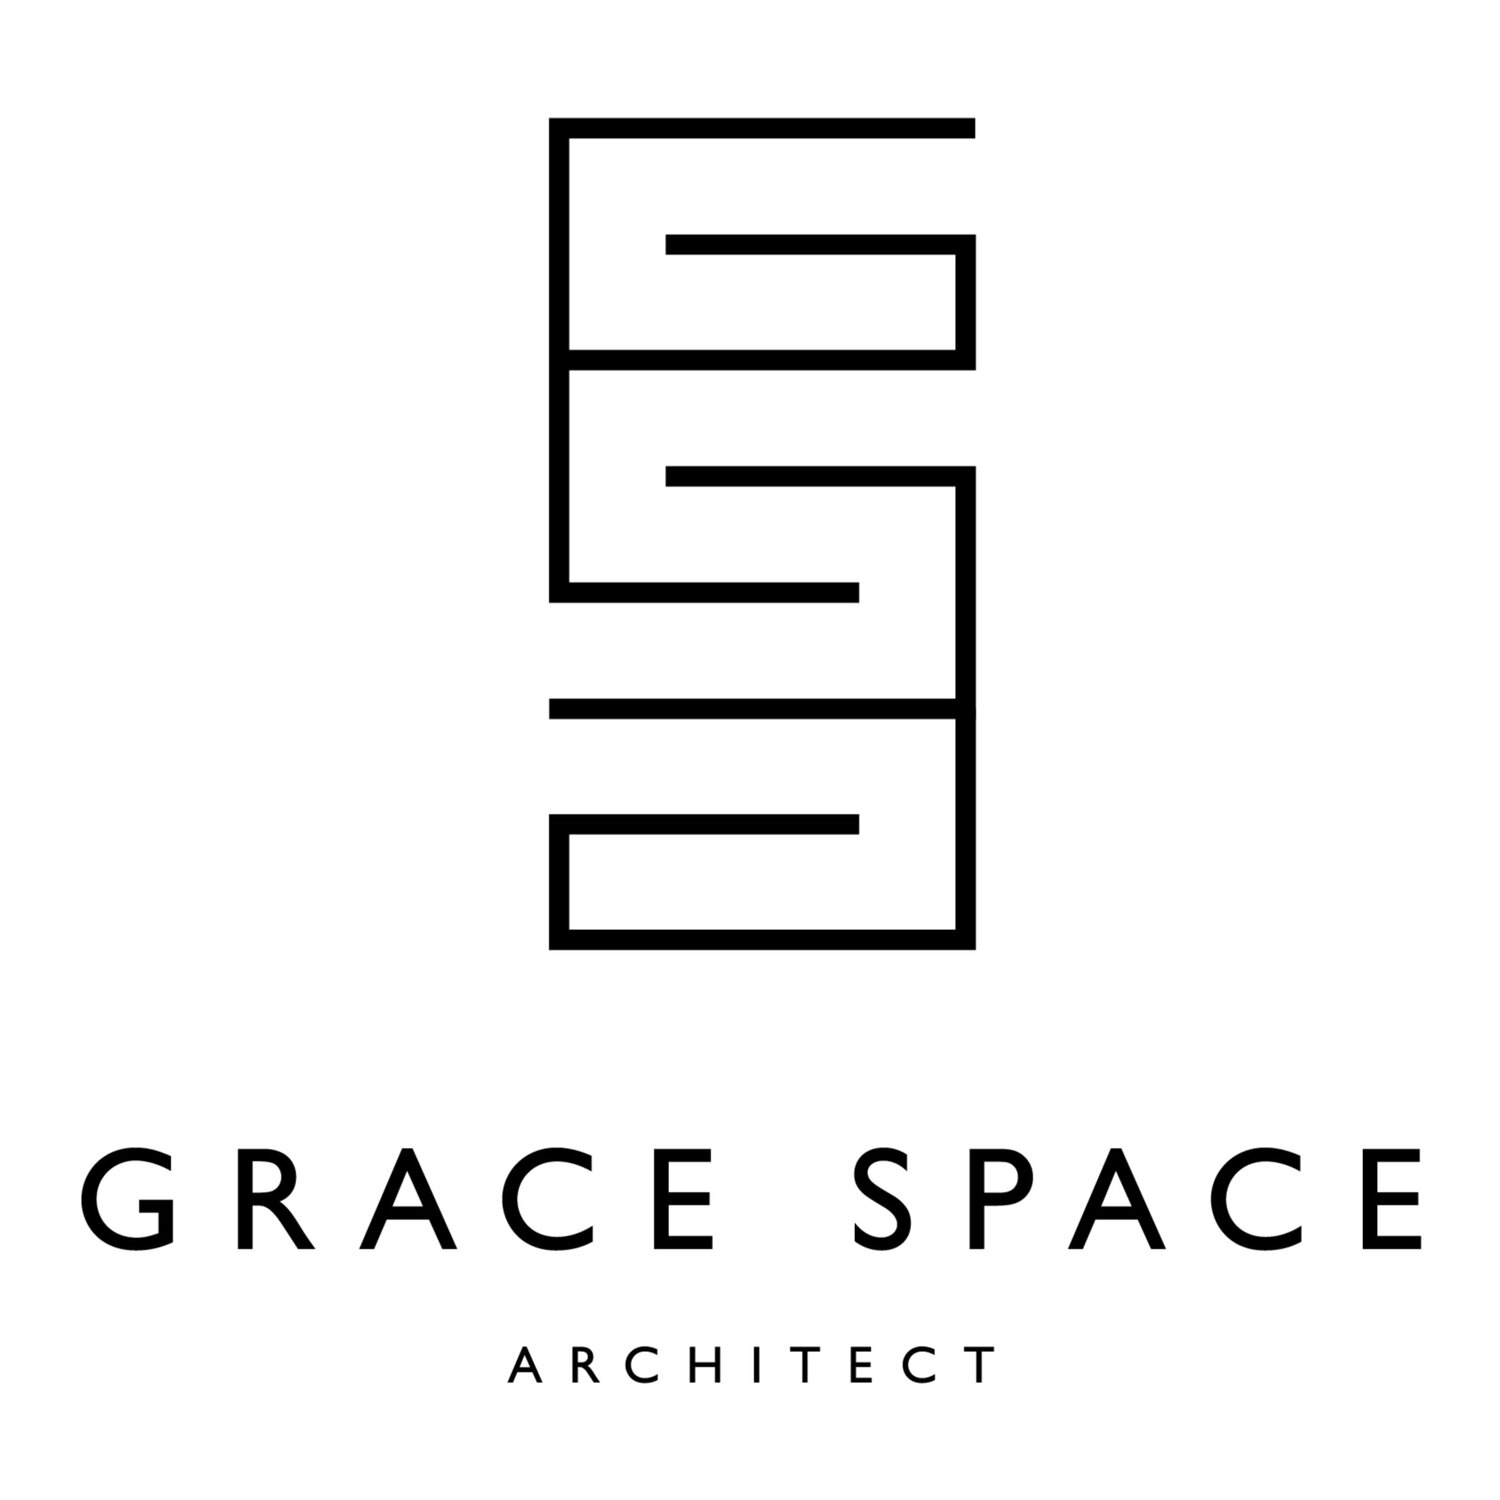 Grace Space Architect, LLC